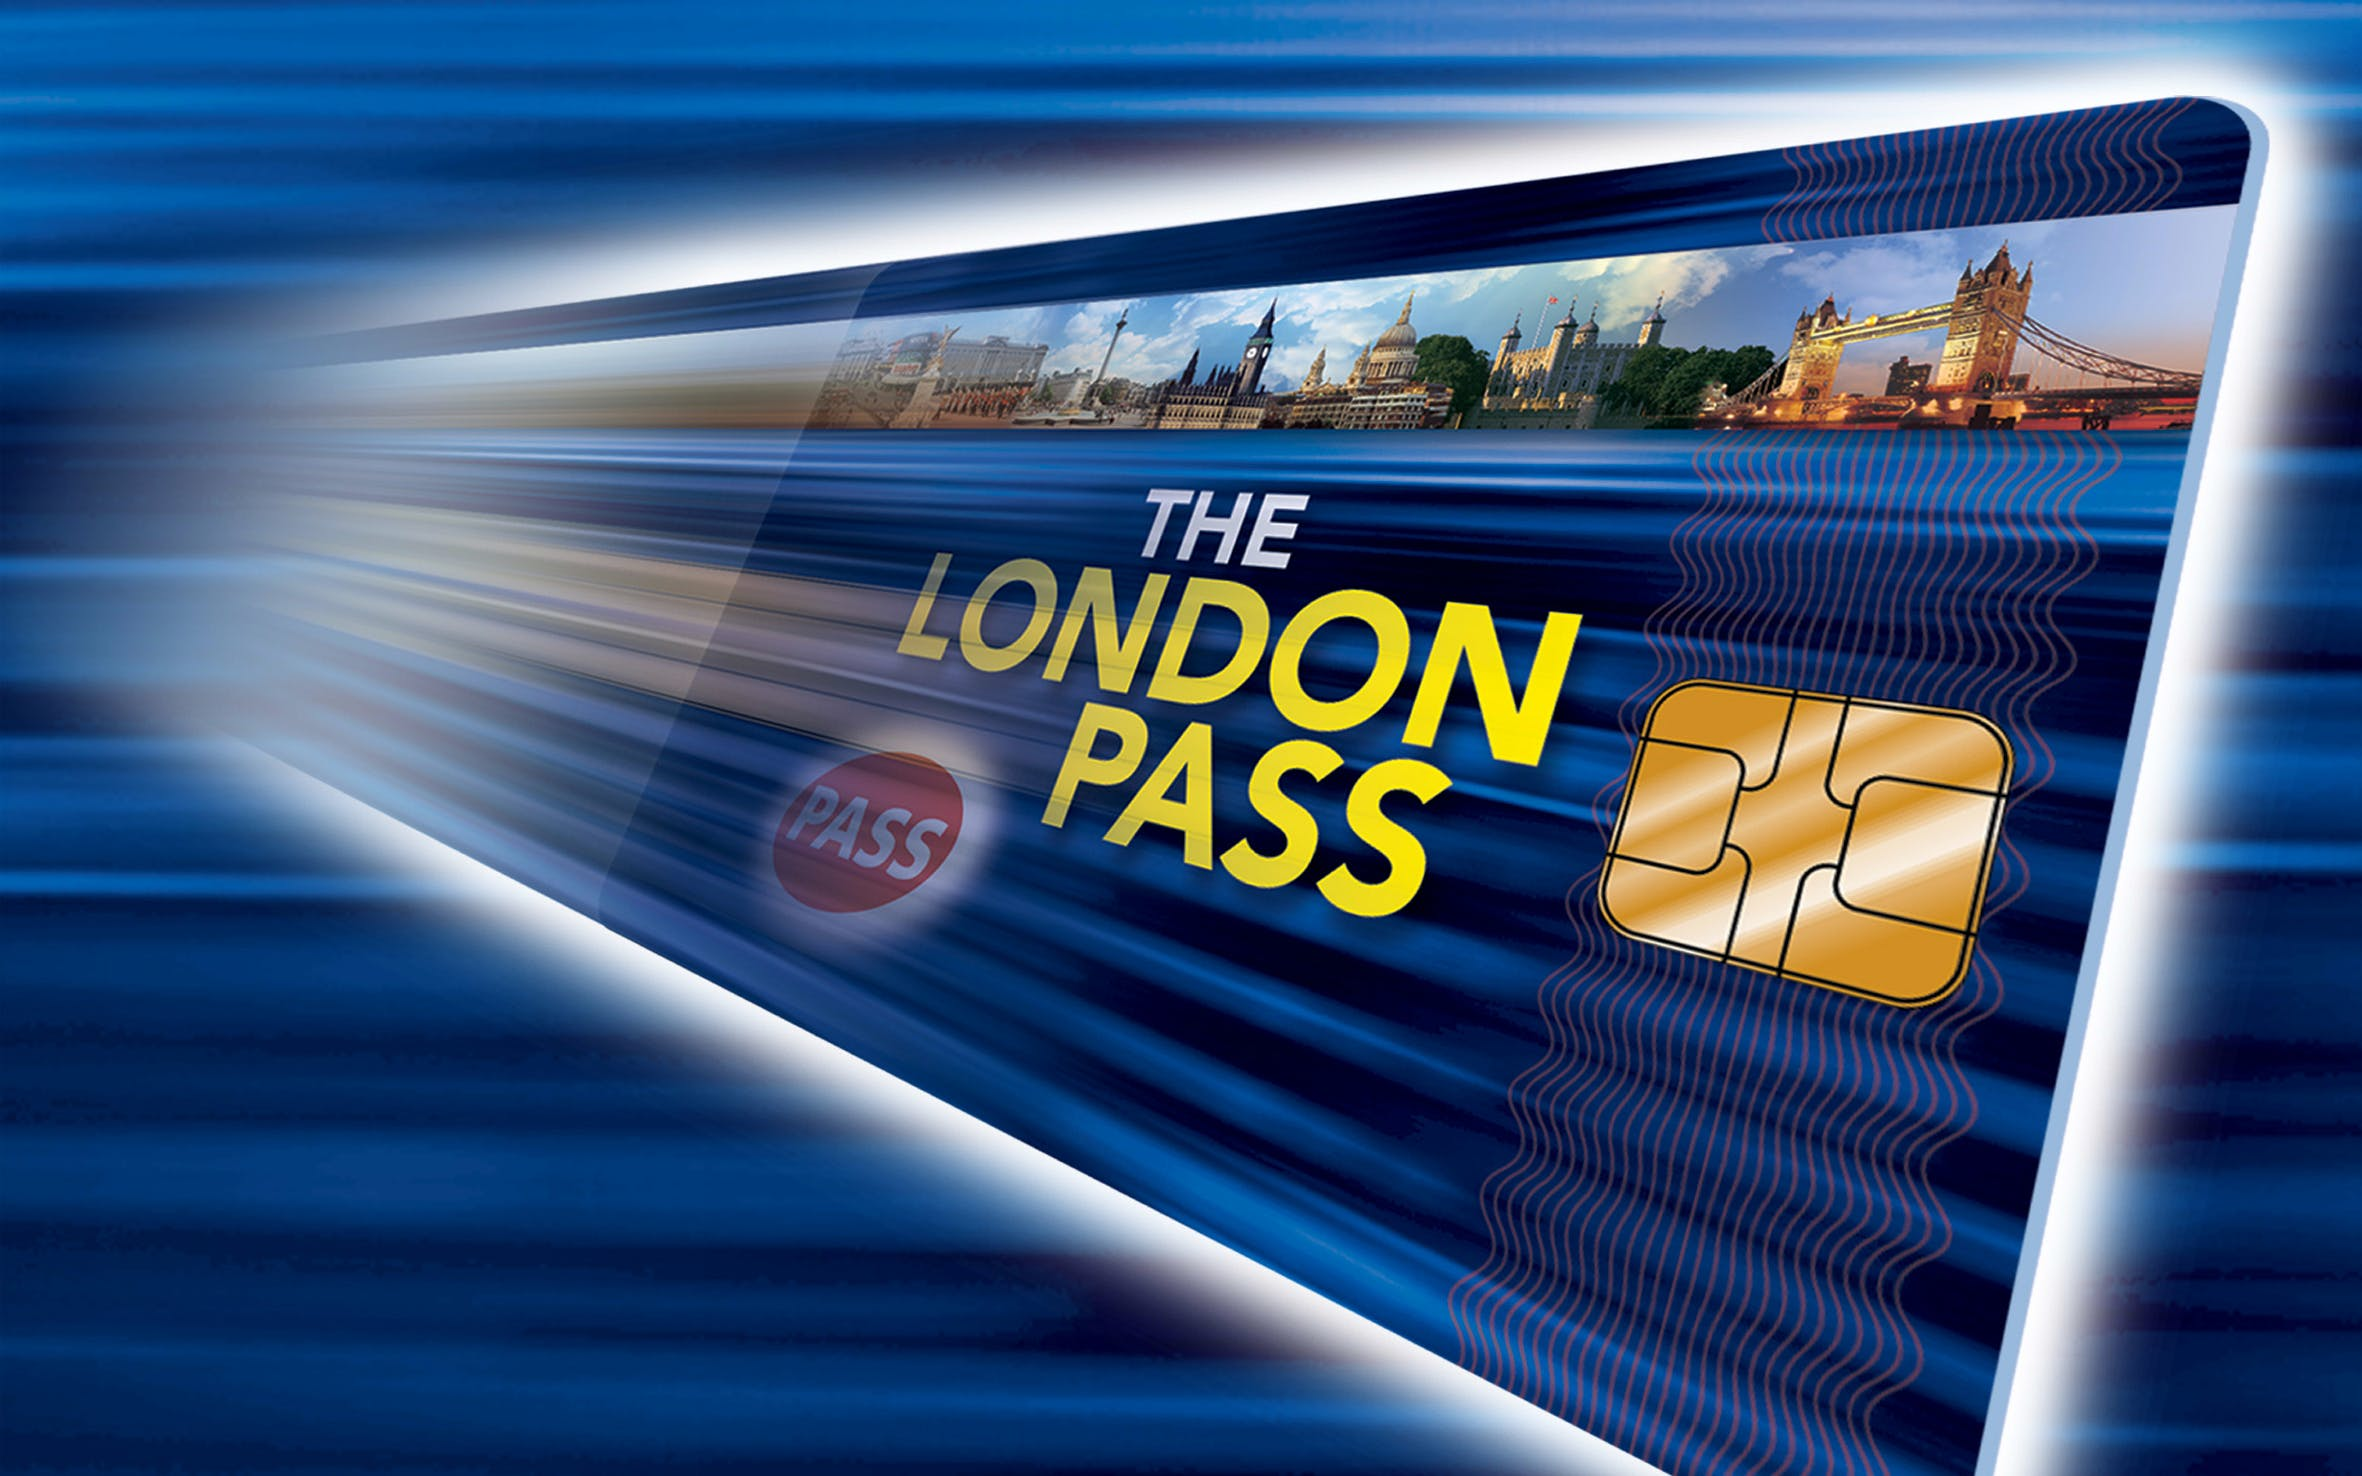 the london pass: 1, 3, 5, 6 & 10 days pass-2